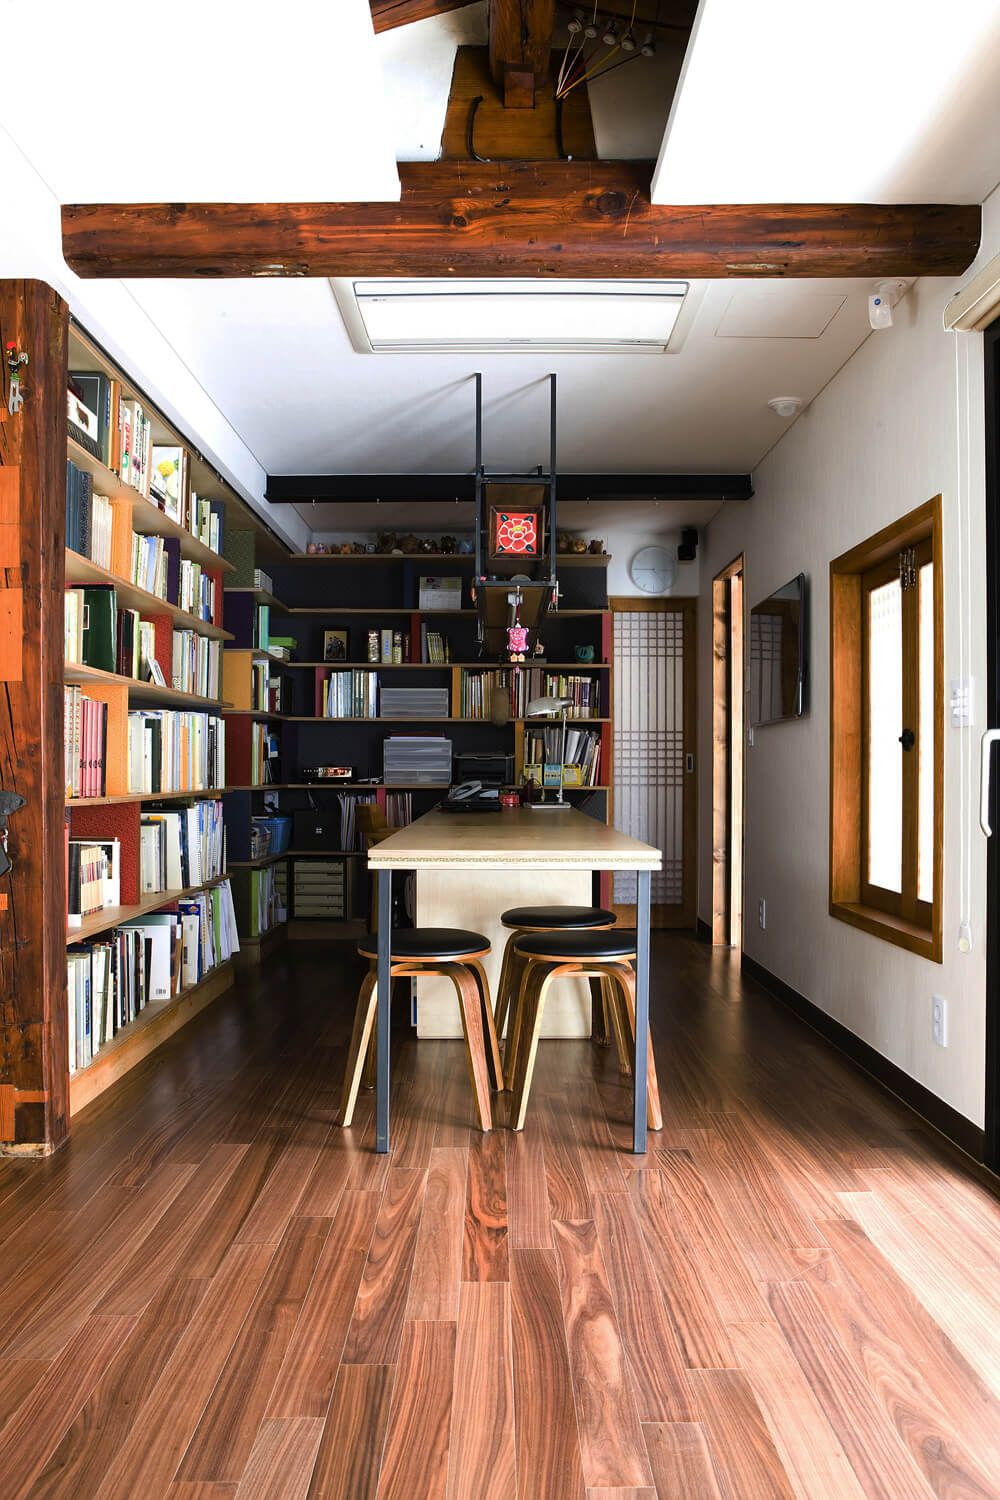 Study rooms minimalist home traditional korean building architecture house design